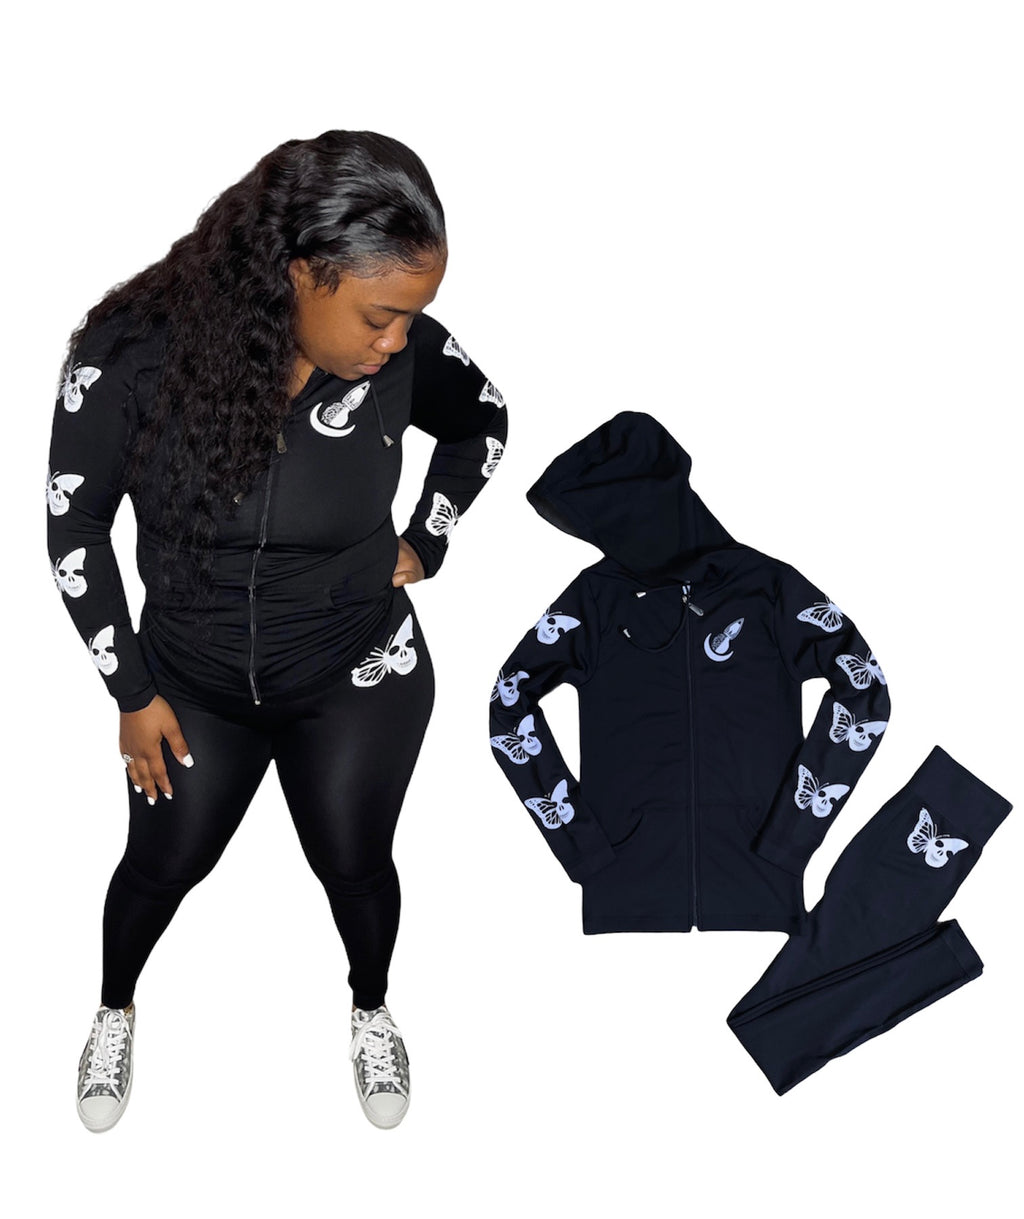 """Skull Butterfly"" Hoodie Legging Set - Black 3M"